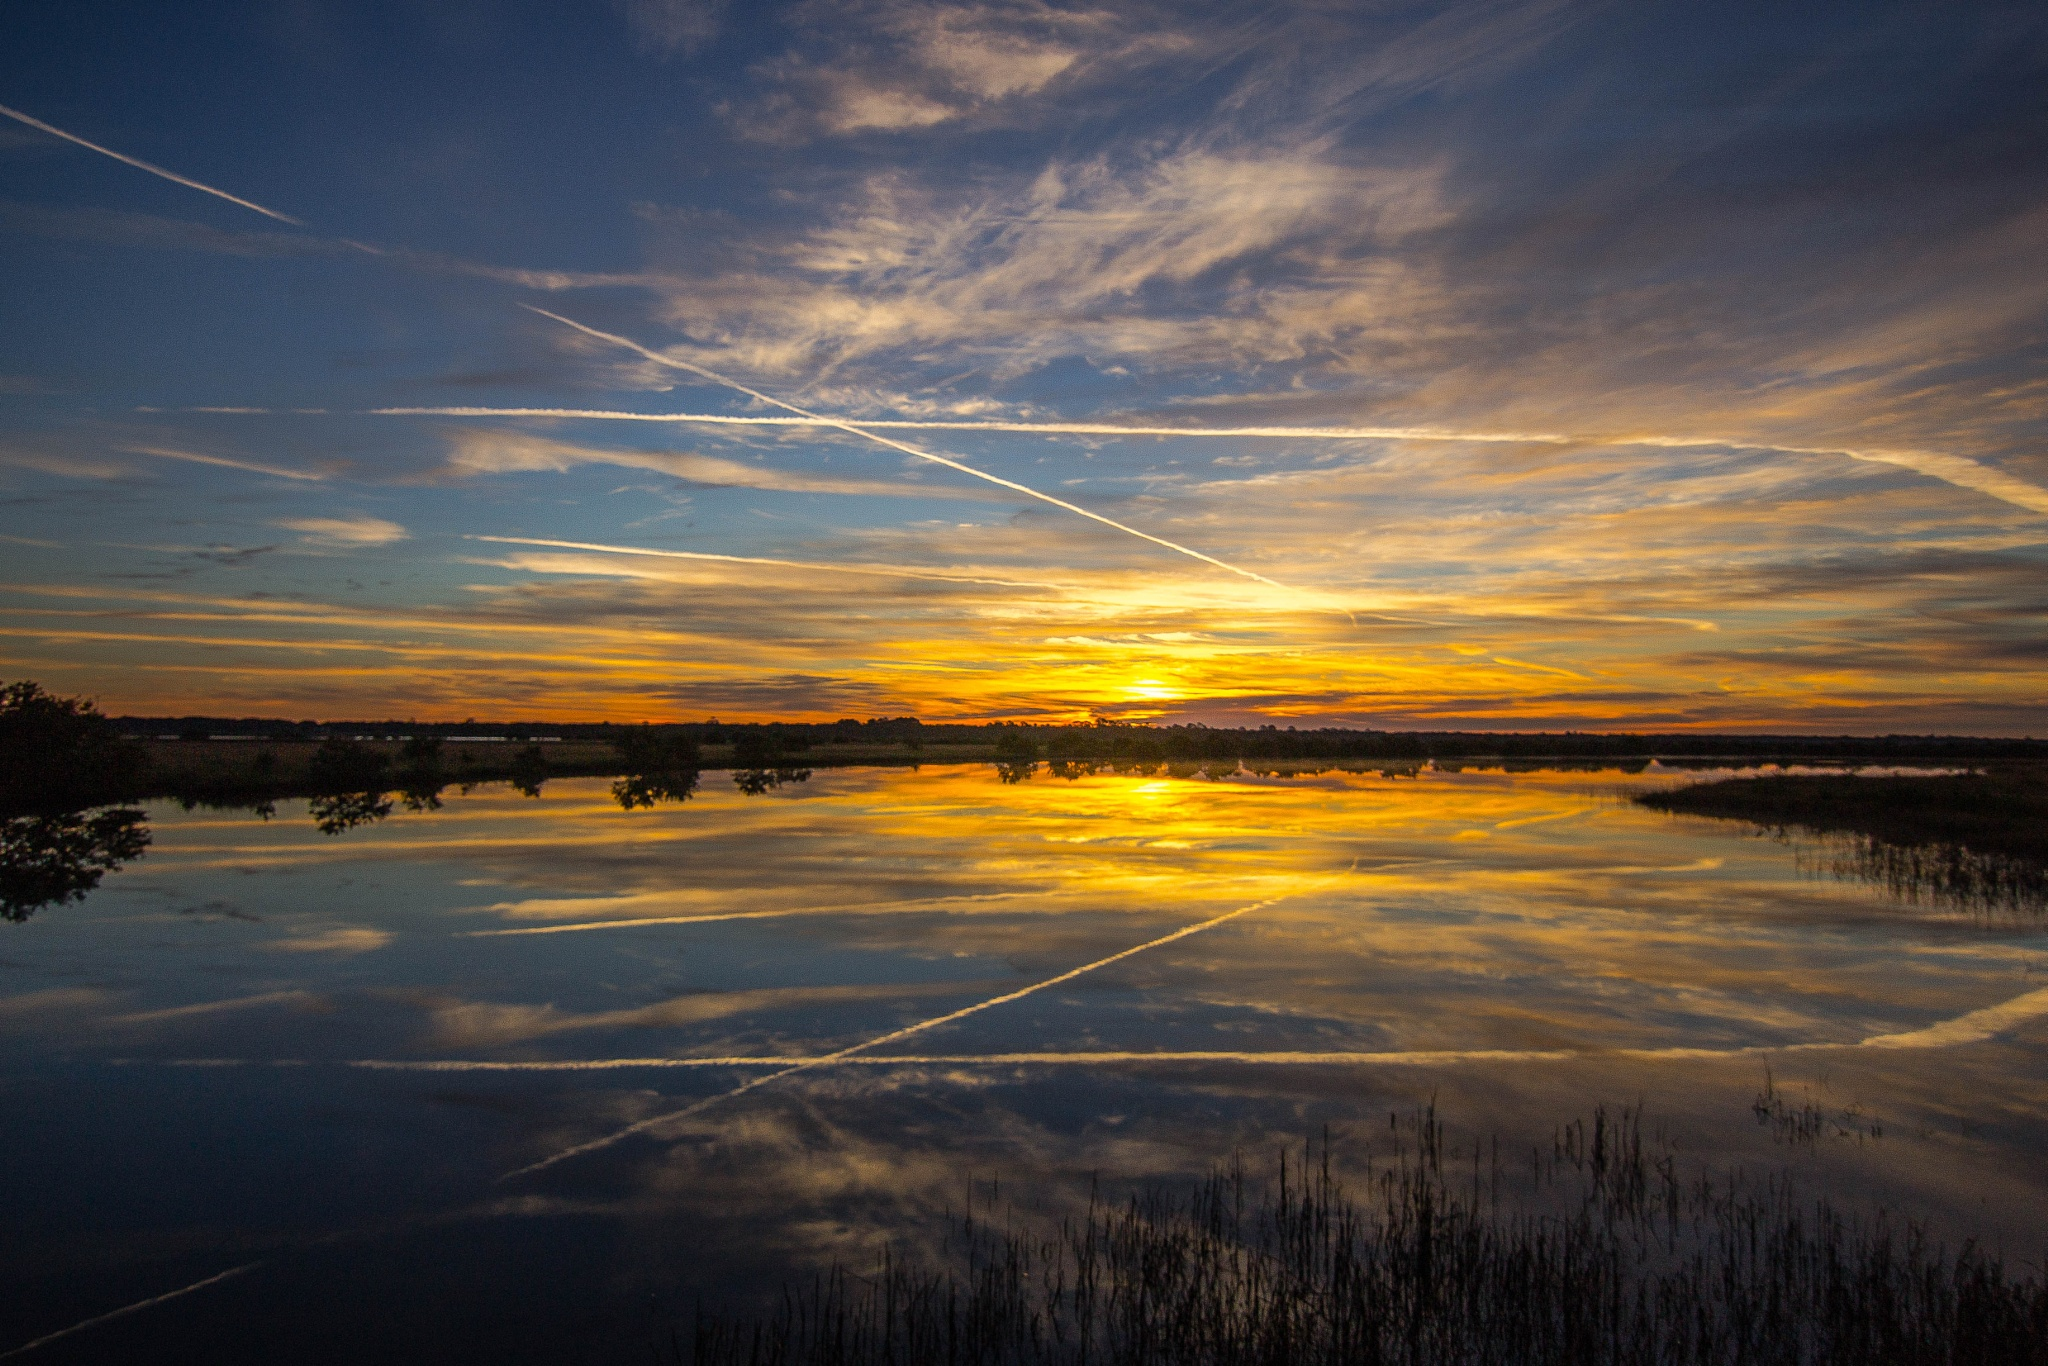 Vapor Trails In The Sky And On The Water by Peter Cavaliere